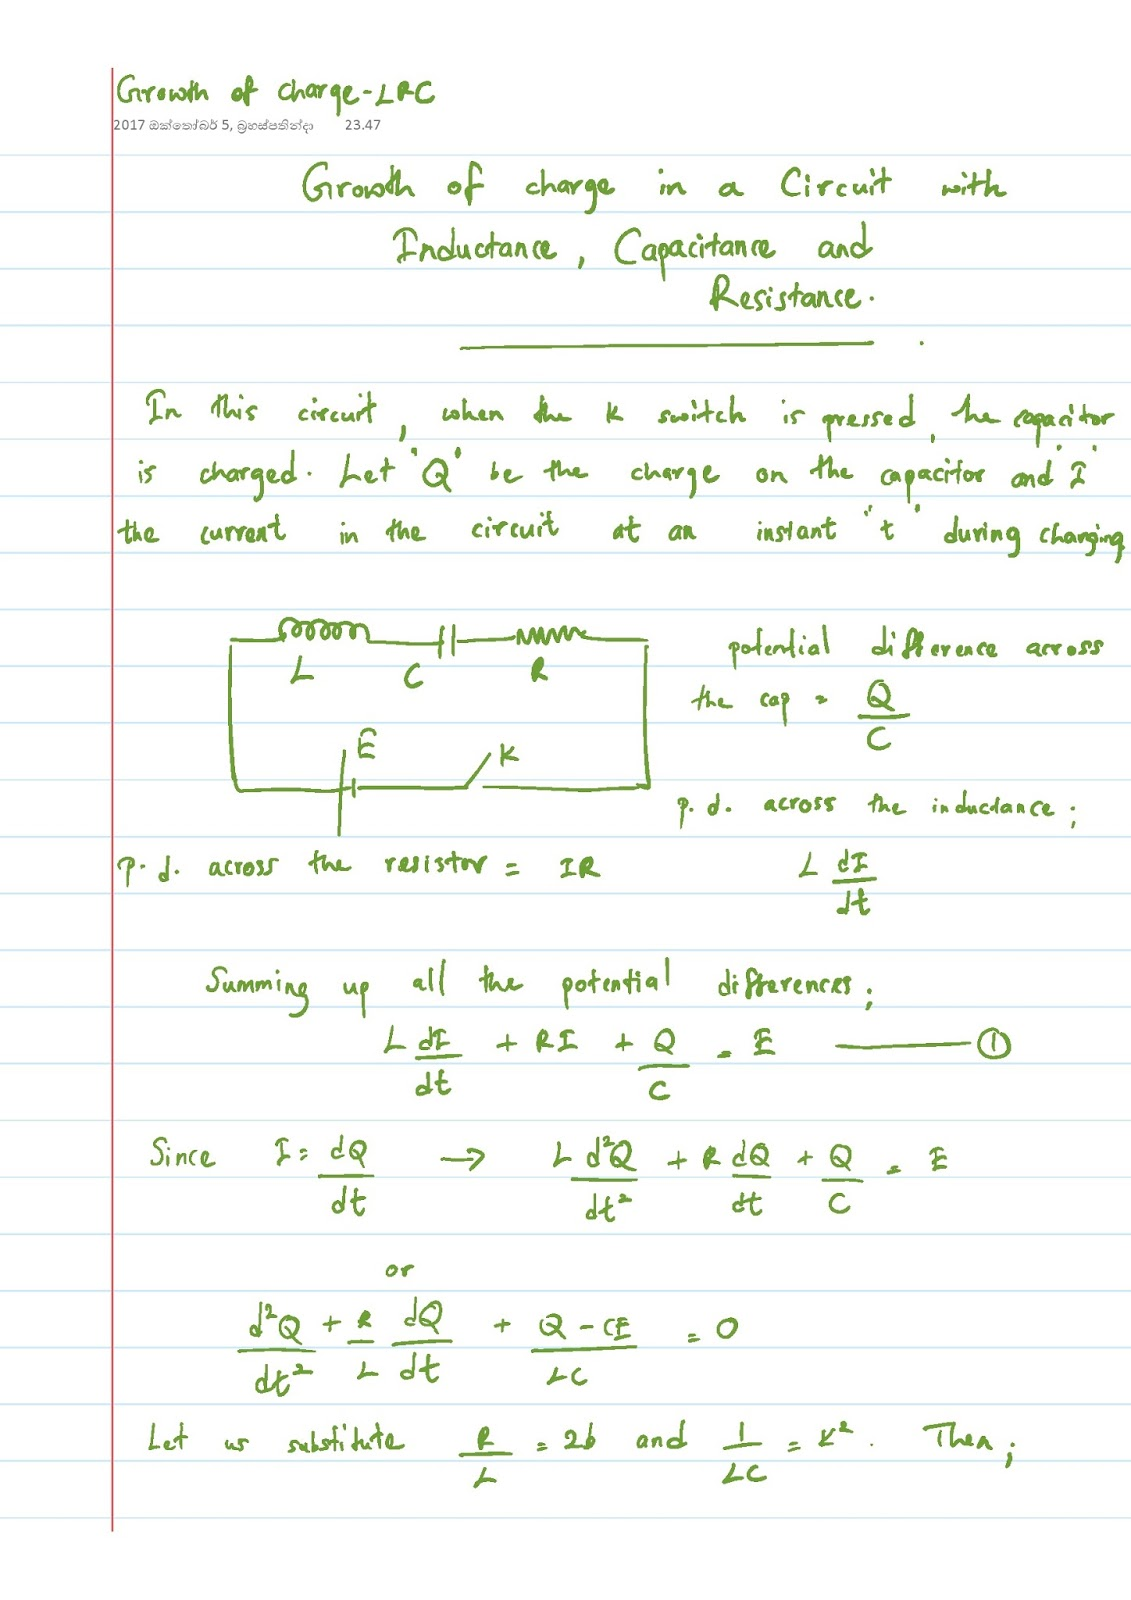 Lecture Notes in Physics : Growth of Charge - LCR Circuit